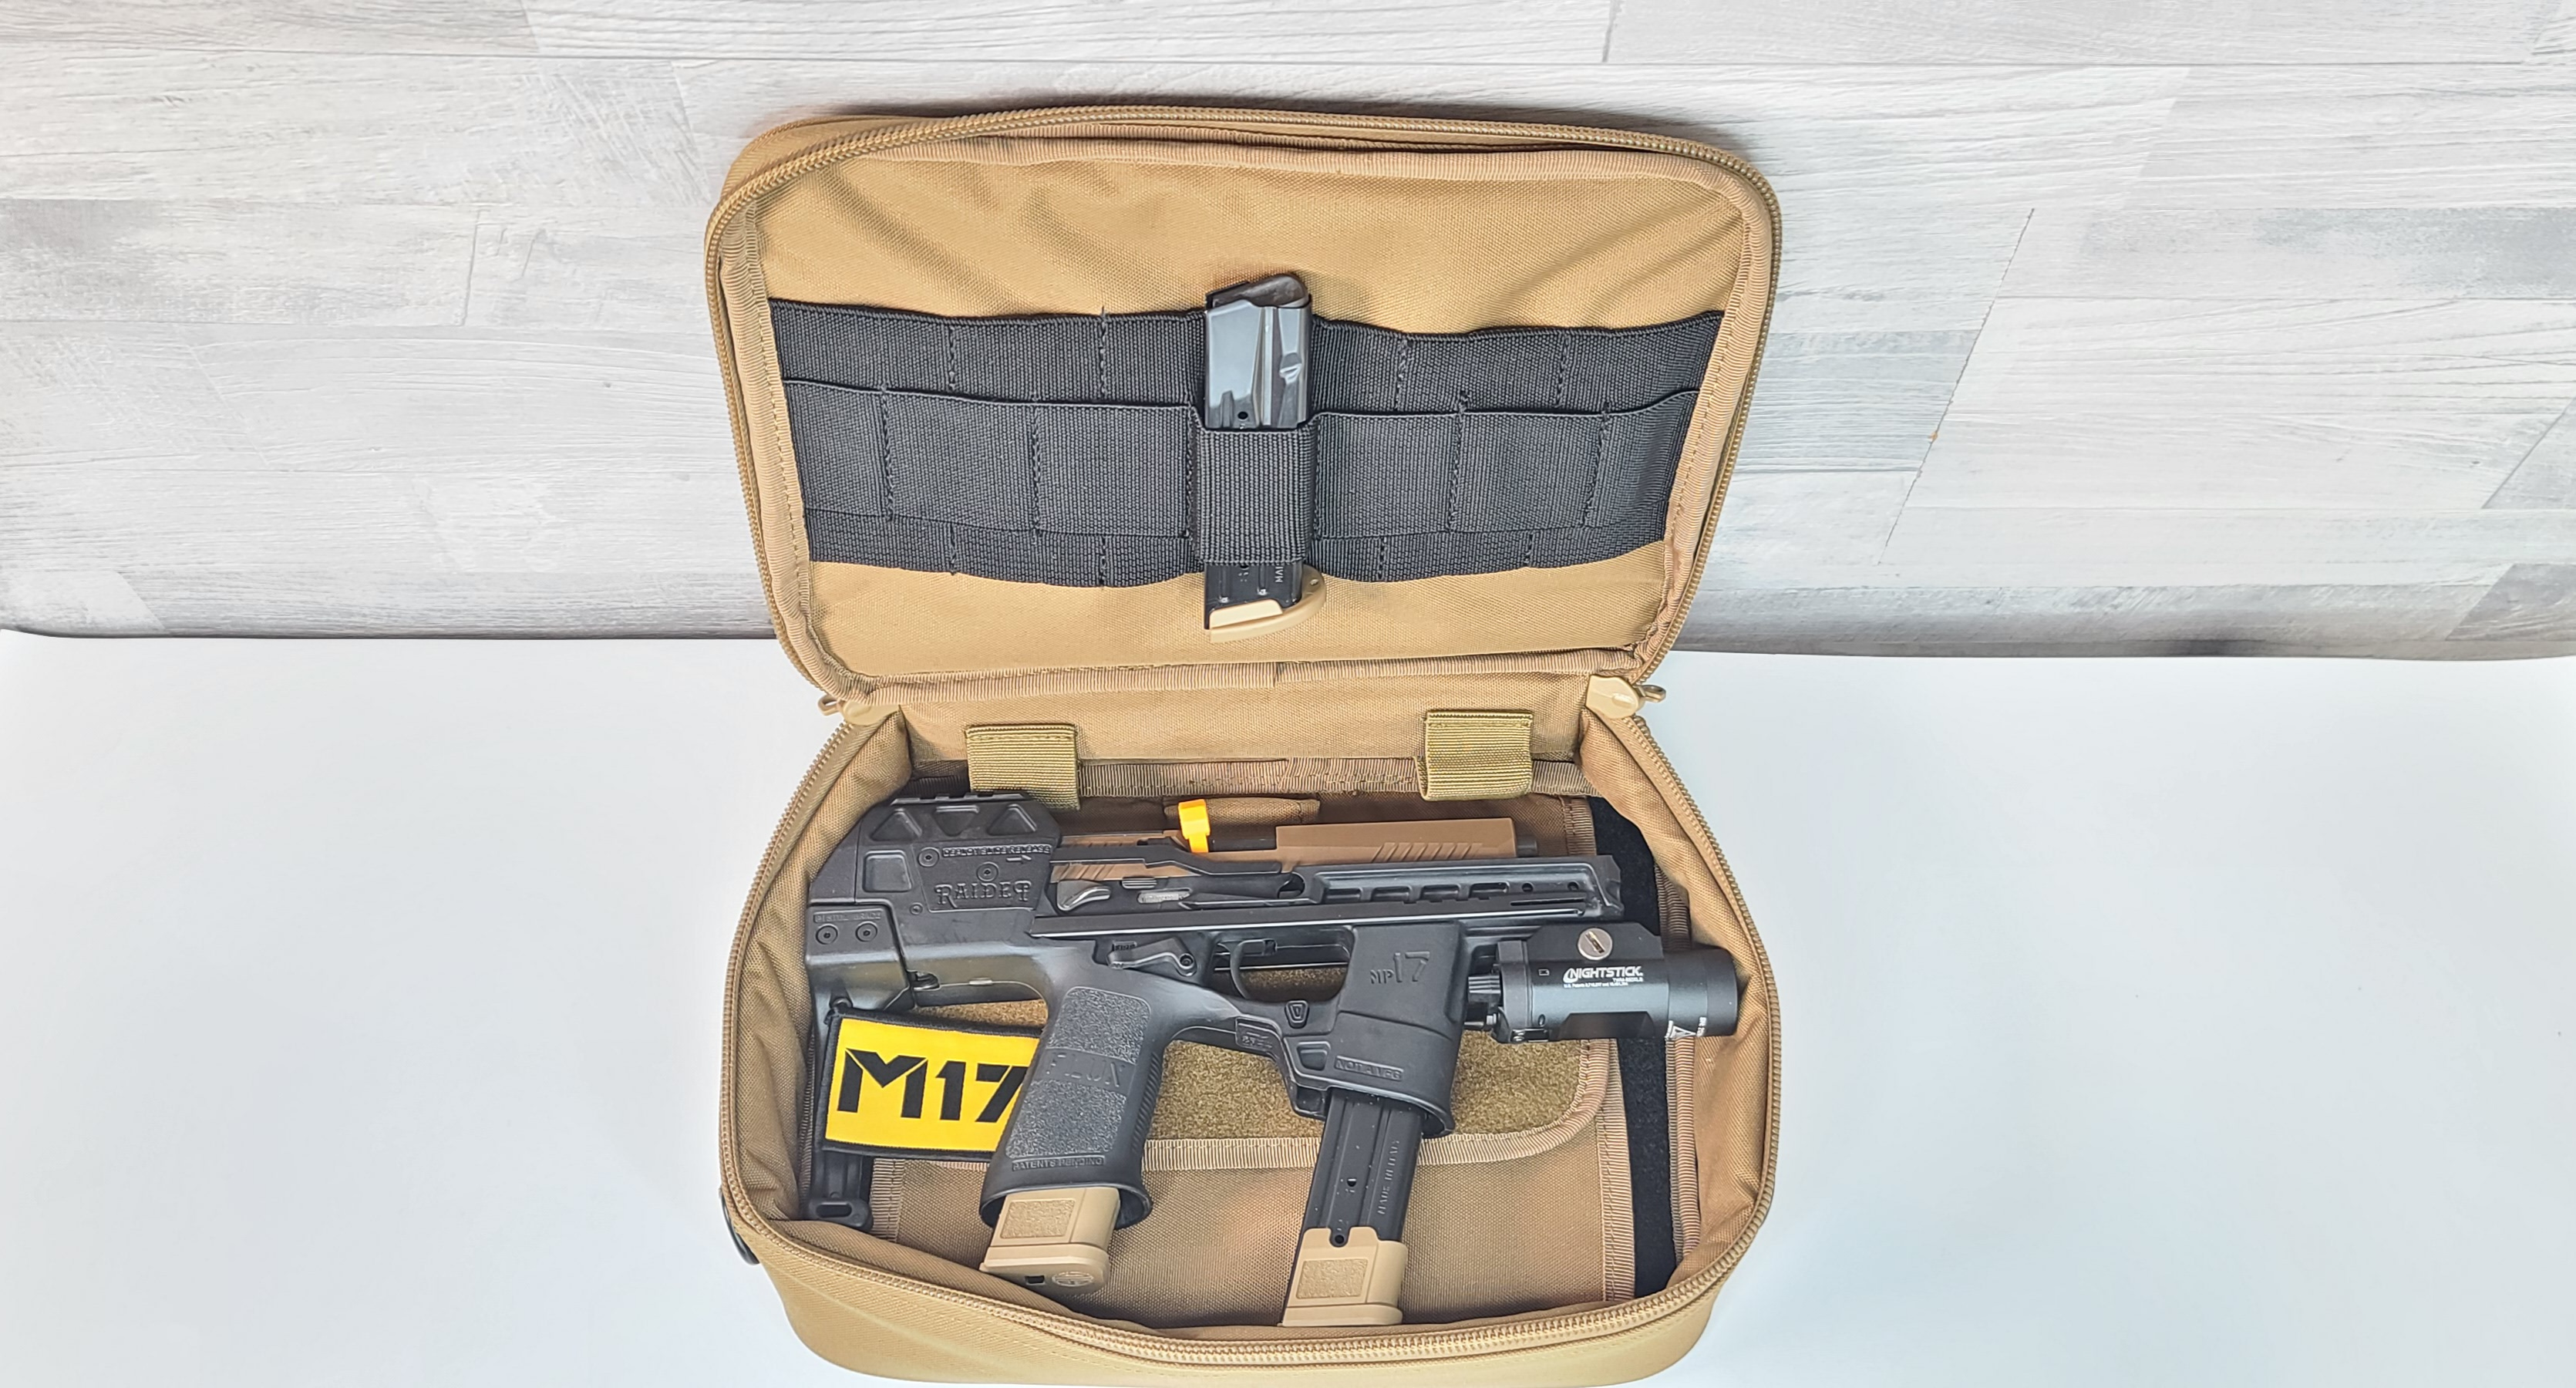 https://www.shopolympiaarms.com/products/sig-sauer-m17-flux-m17-4111